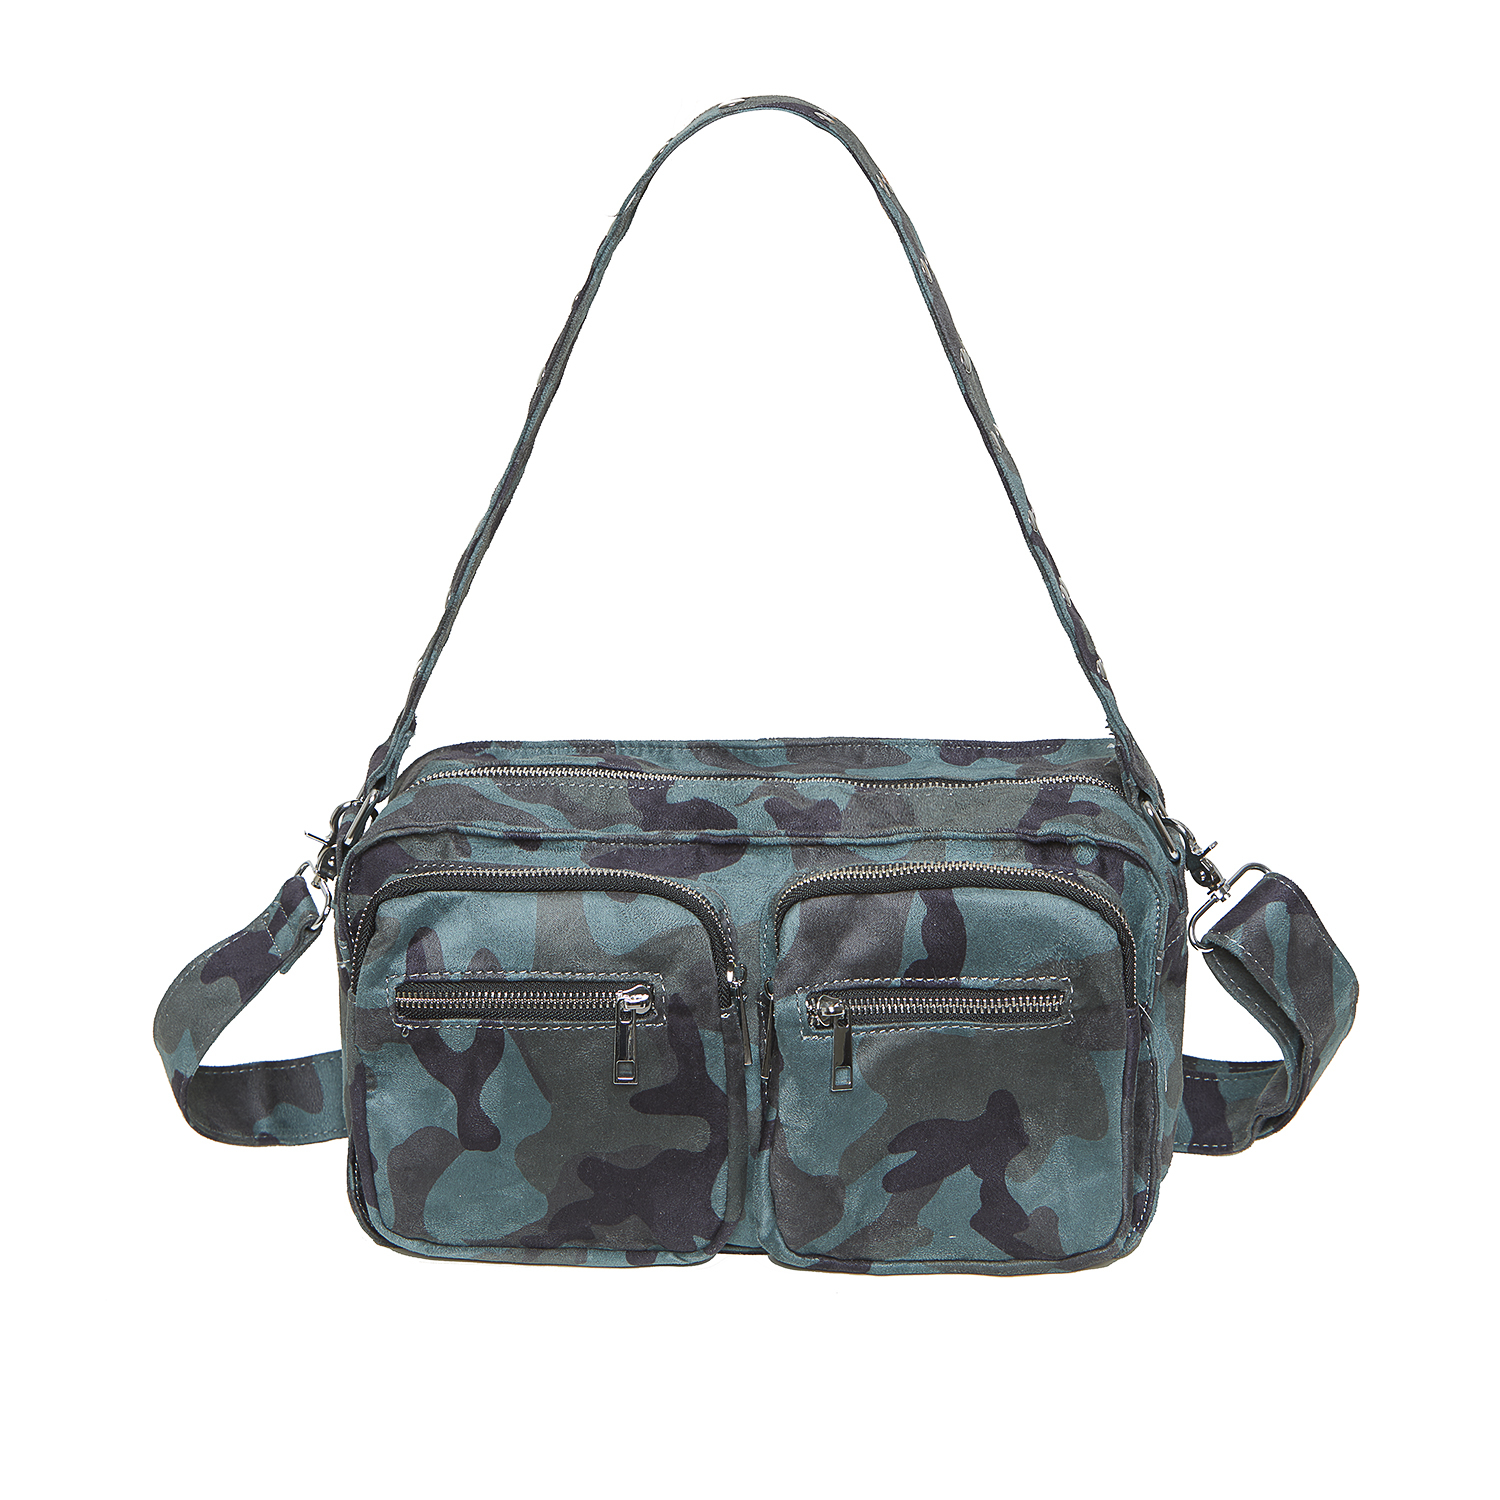 Image of   Noella Caja Cross Over Bag, Army Camouflage